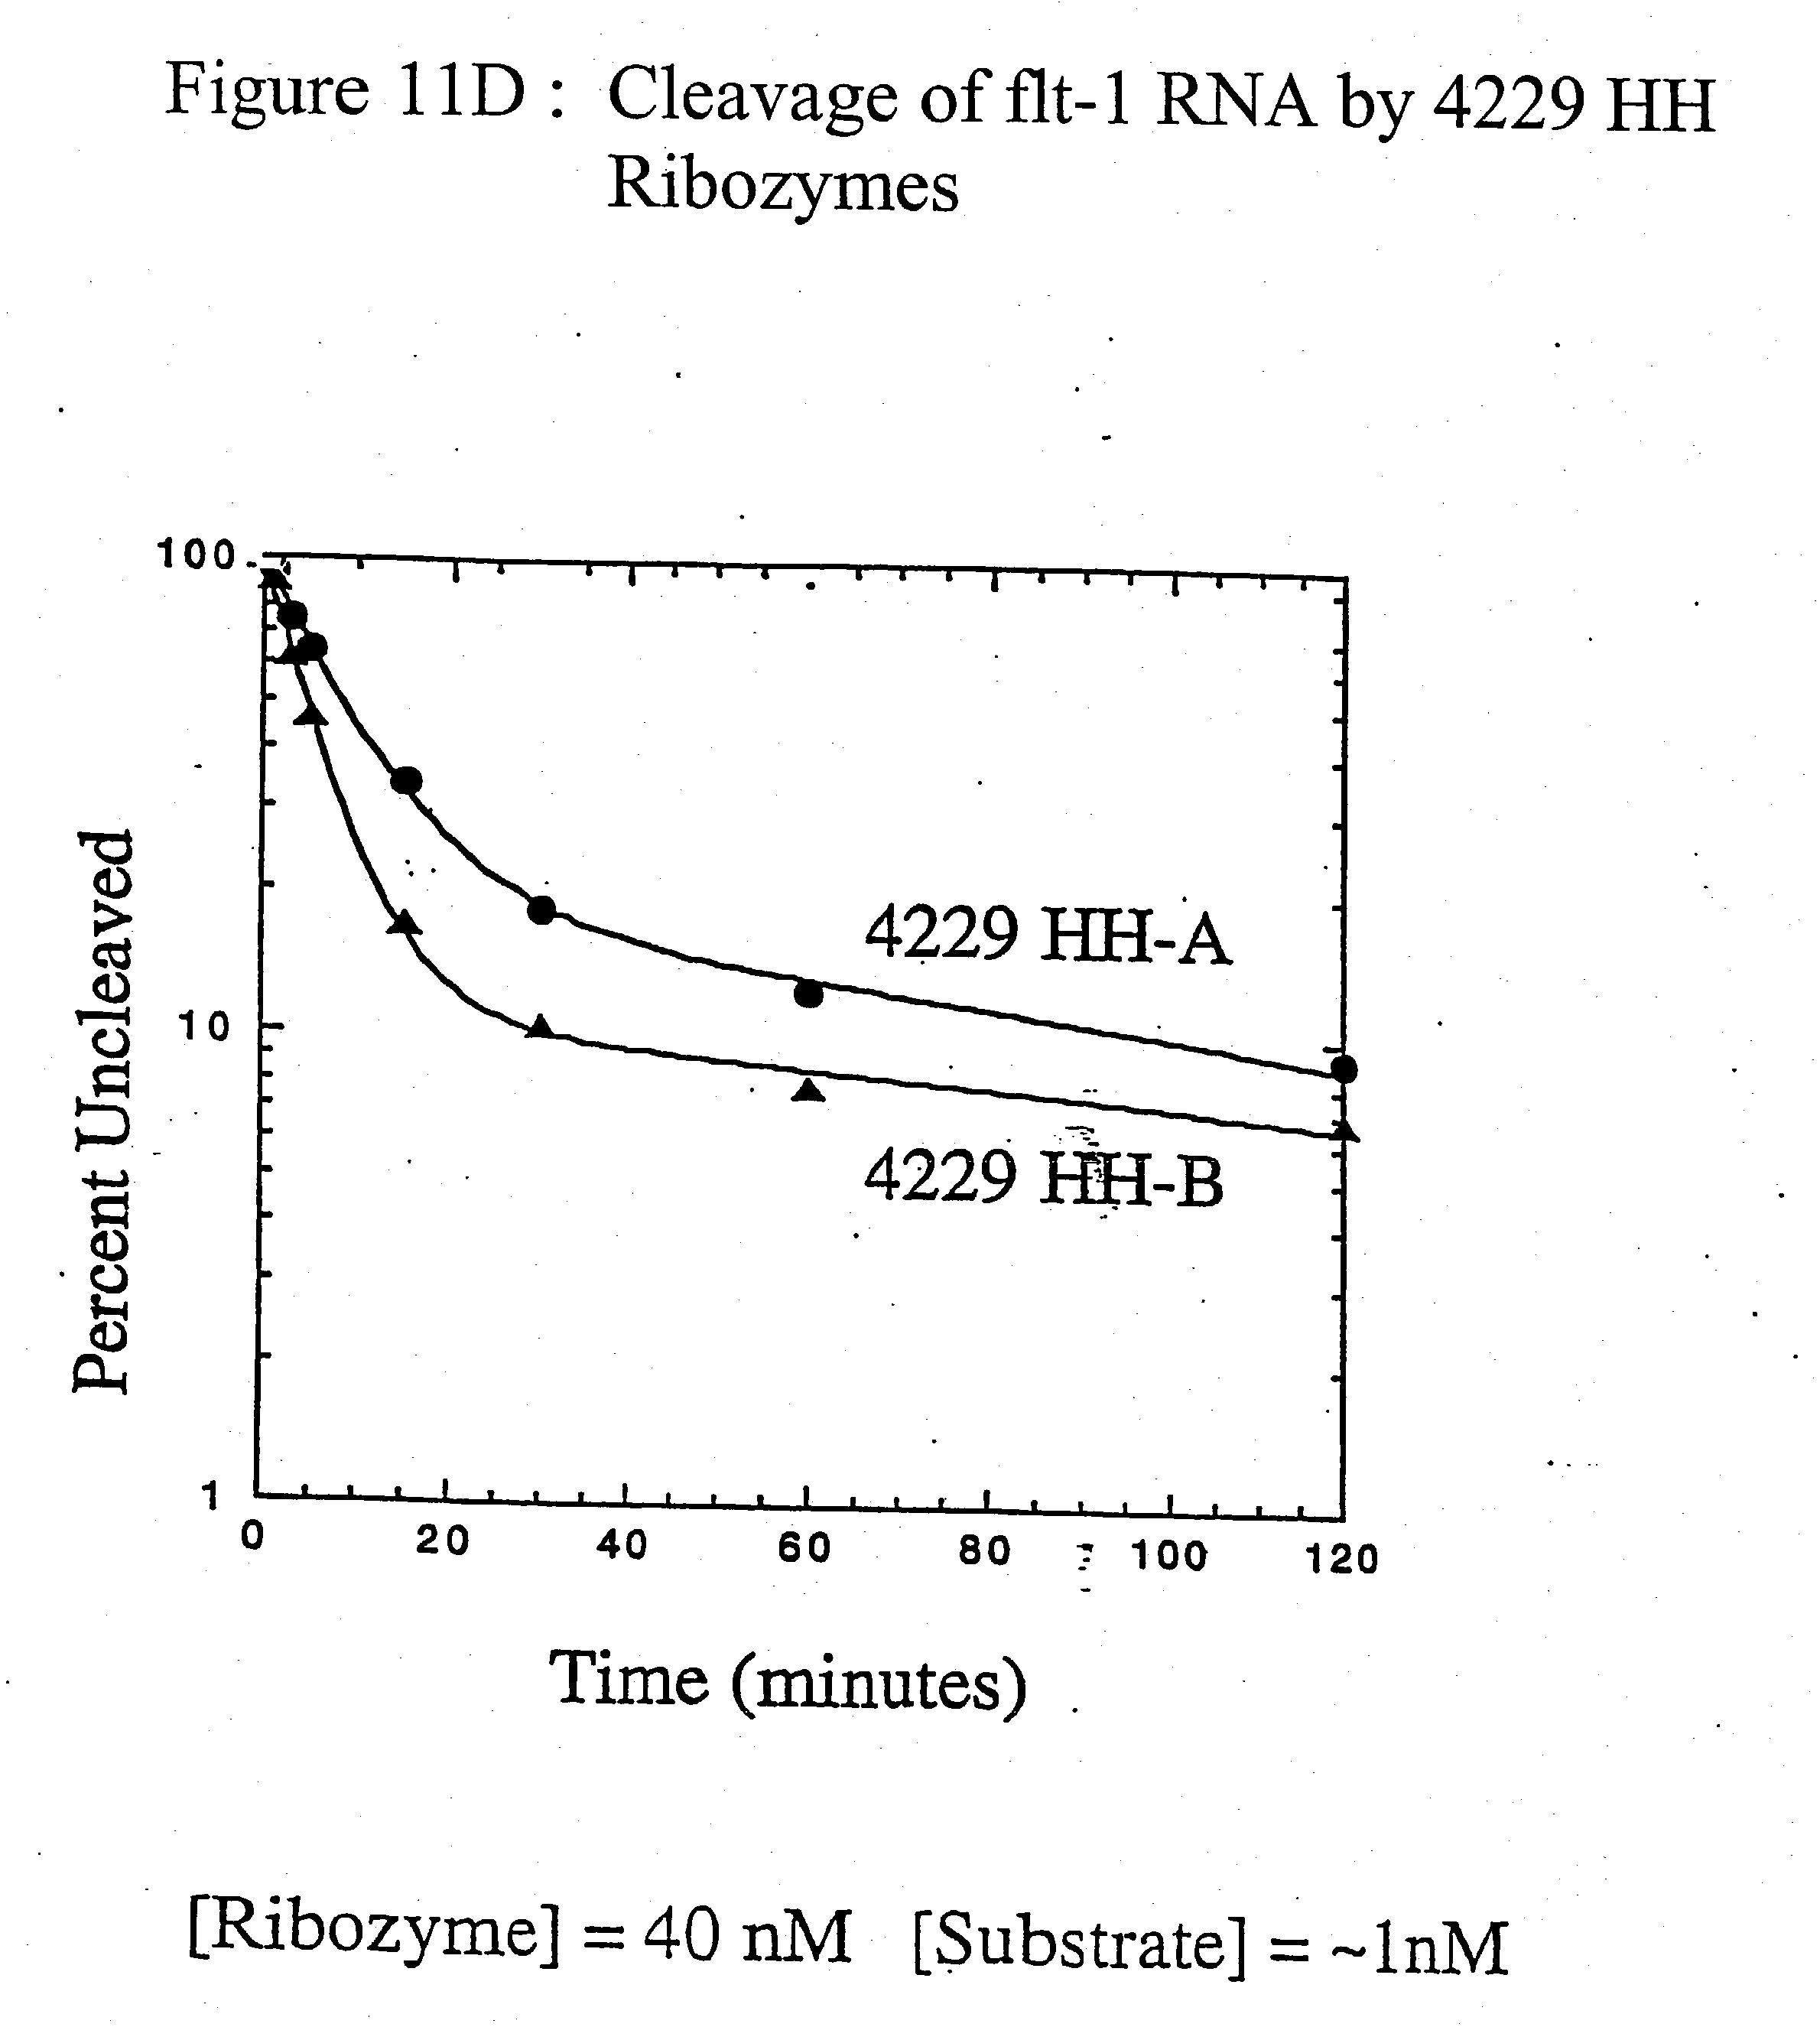 Us20040102389a1 Nucleic Acid Mediated Treatment Of Diseases Or Midland 1165 Diagram 18 19 805 Conditions Related To Levels Vascular Endothelial Growth Factor Receptor Vegf R